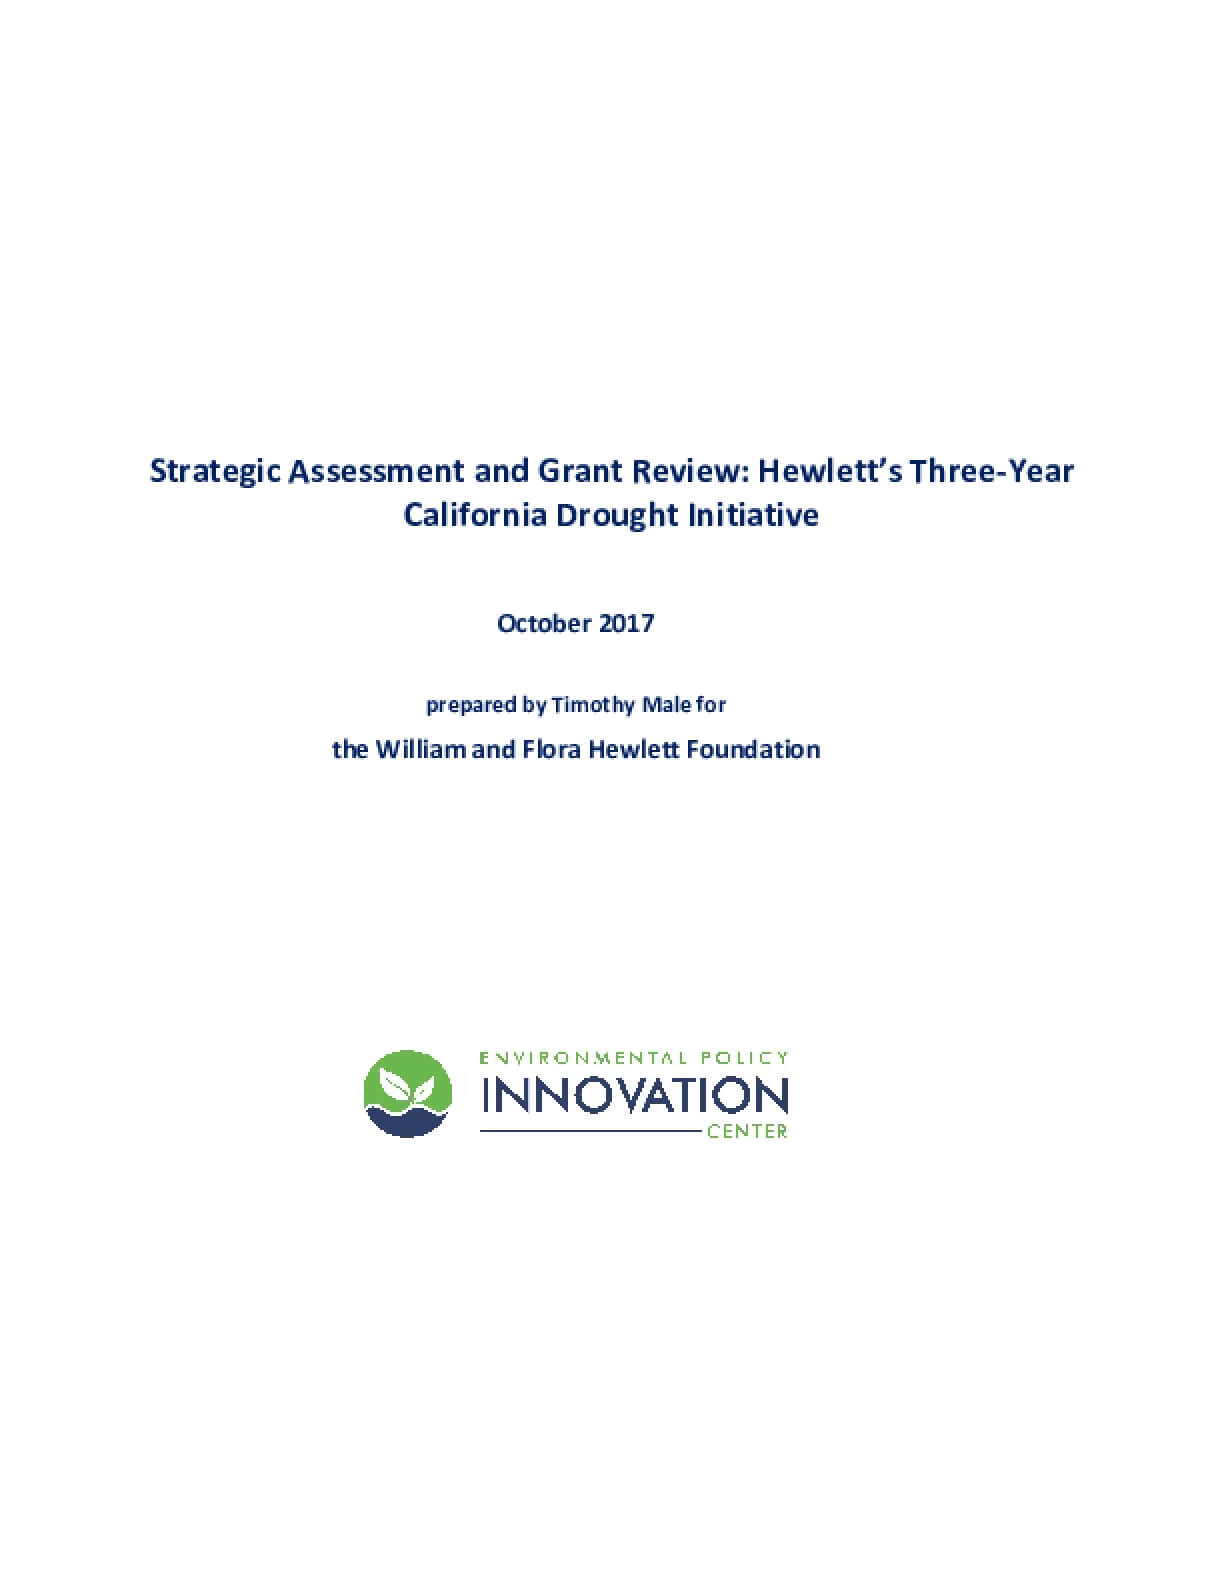 Strategic Assessment and Grant Review: Hewlett's Three-Year California Drought Initiative